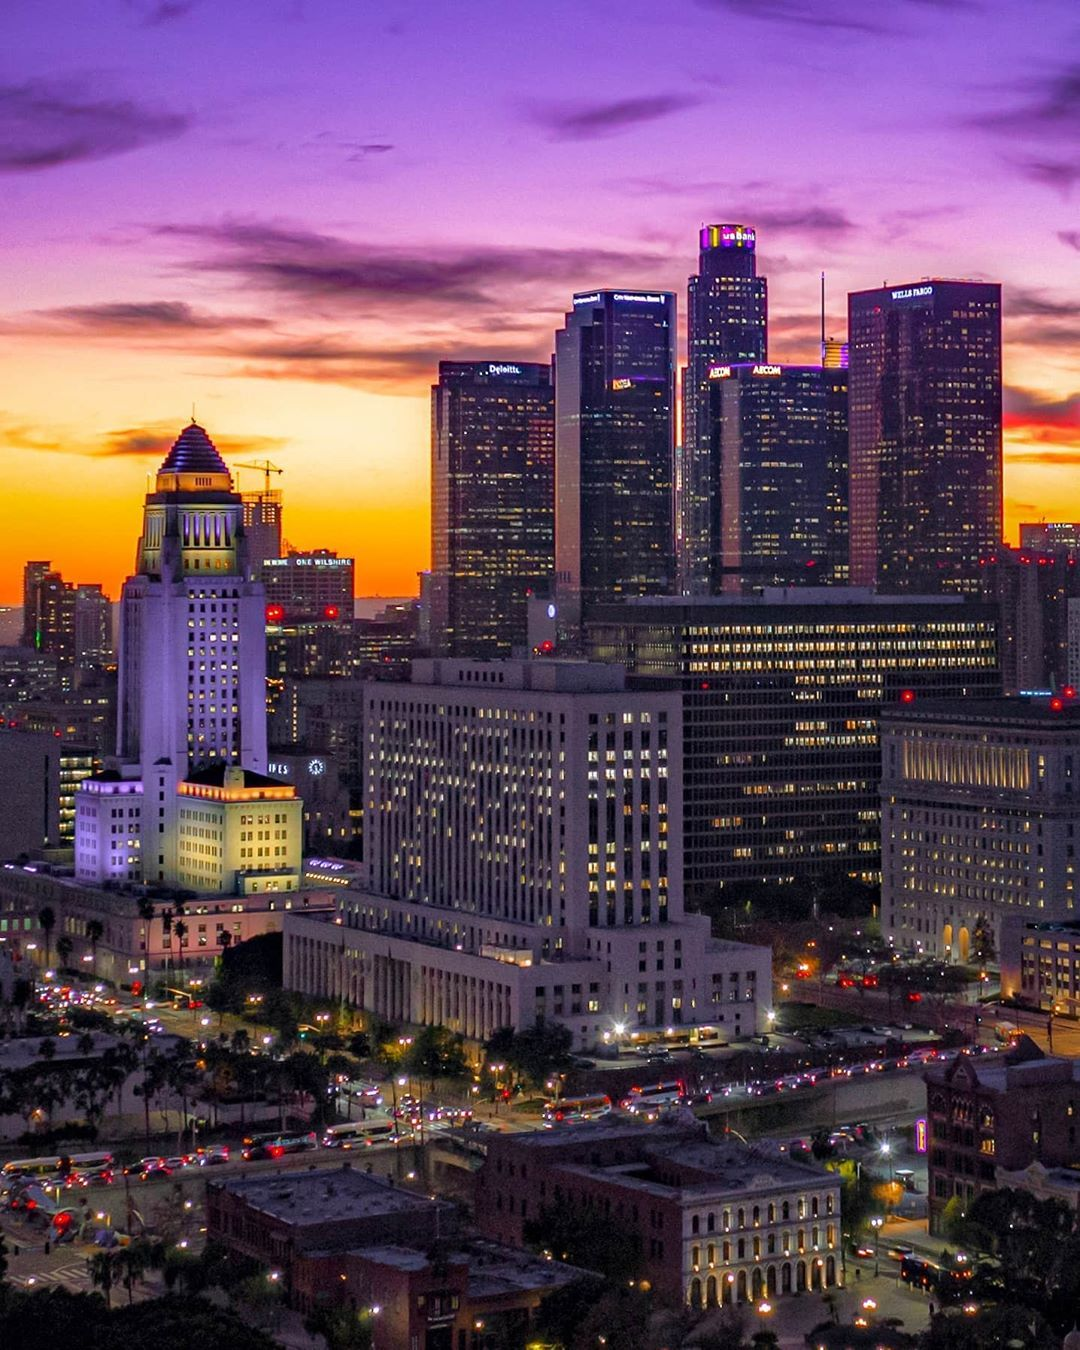 Jerome G Favre On Instagram The Heavens Over Los Angeles Wear Purple And Gold Yesterday S Sunset In 2020 Los Angeles Sunset Los Angeles California